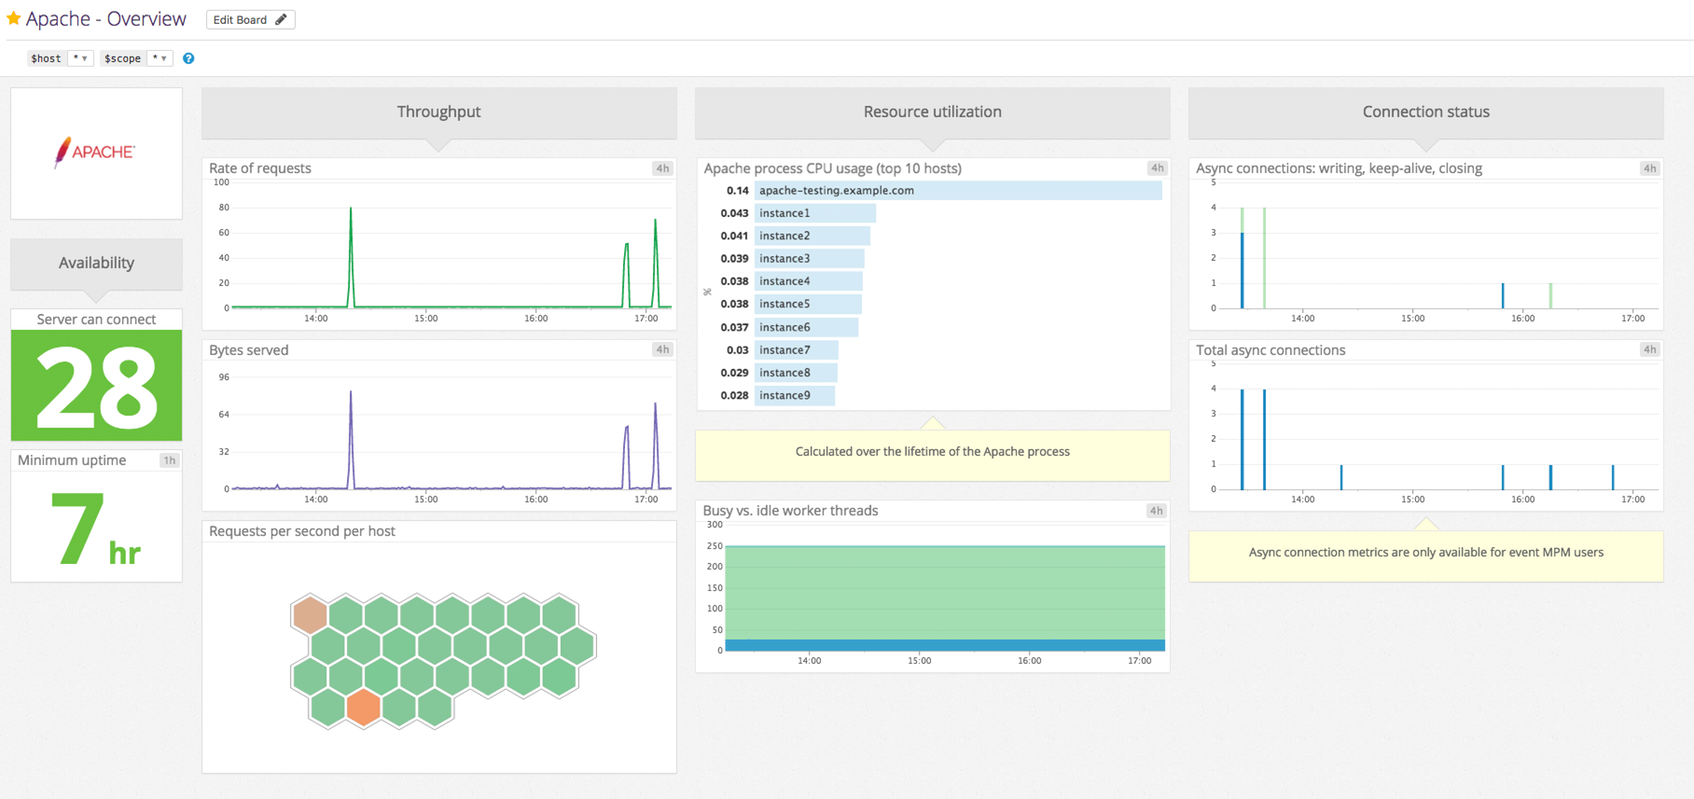 Apache Dashboard